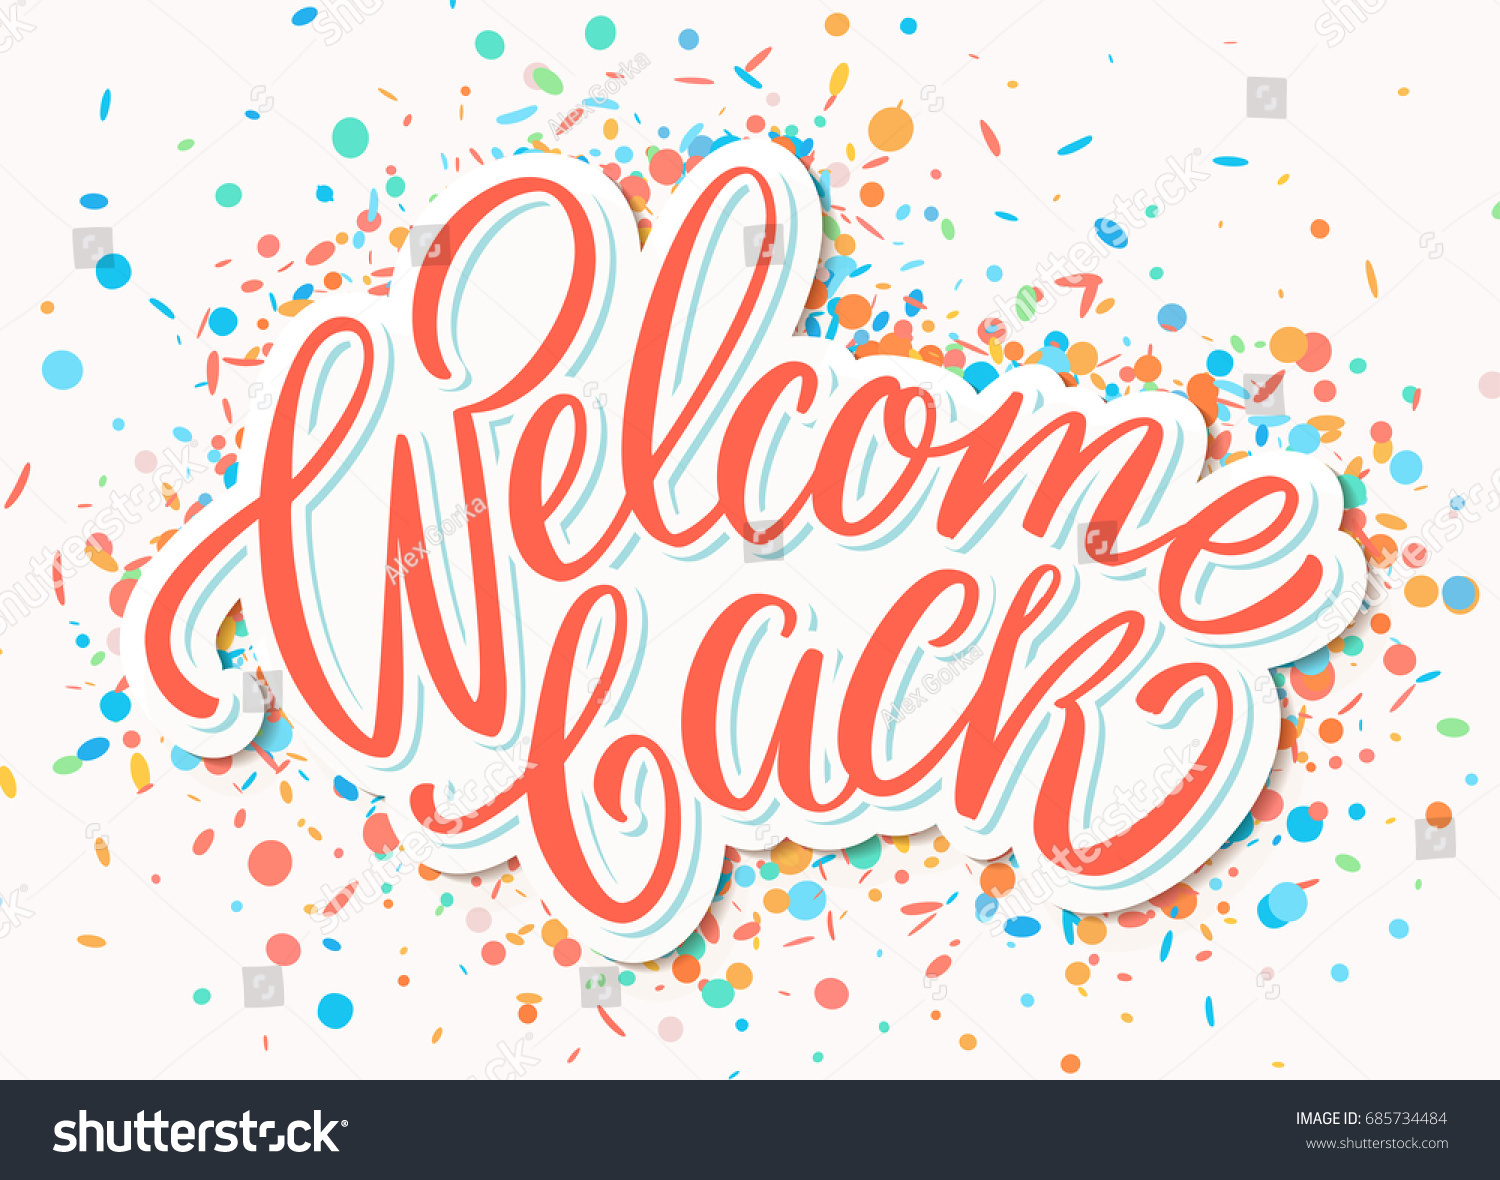 stock-vector-welcome-back-banner-685734484.jpg